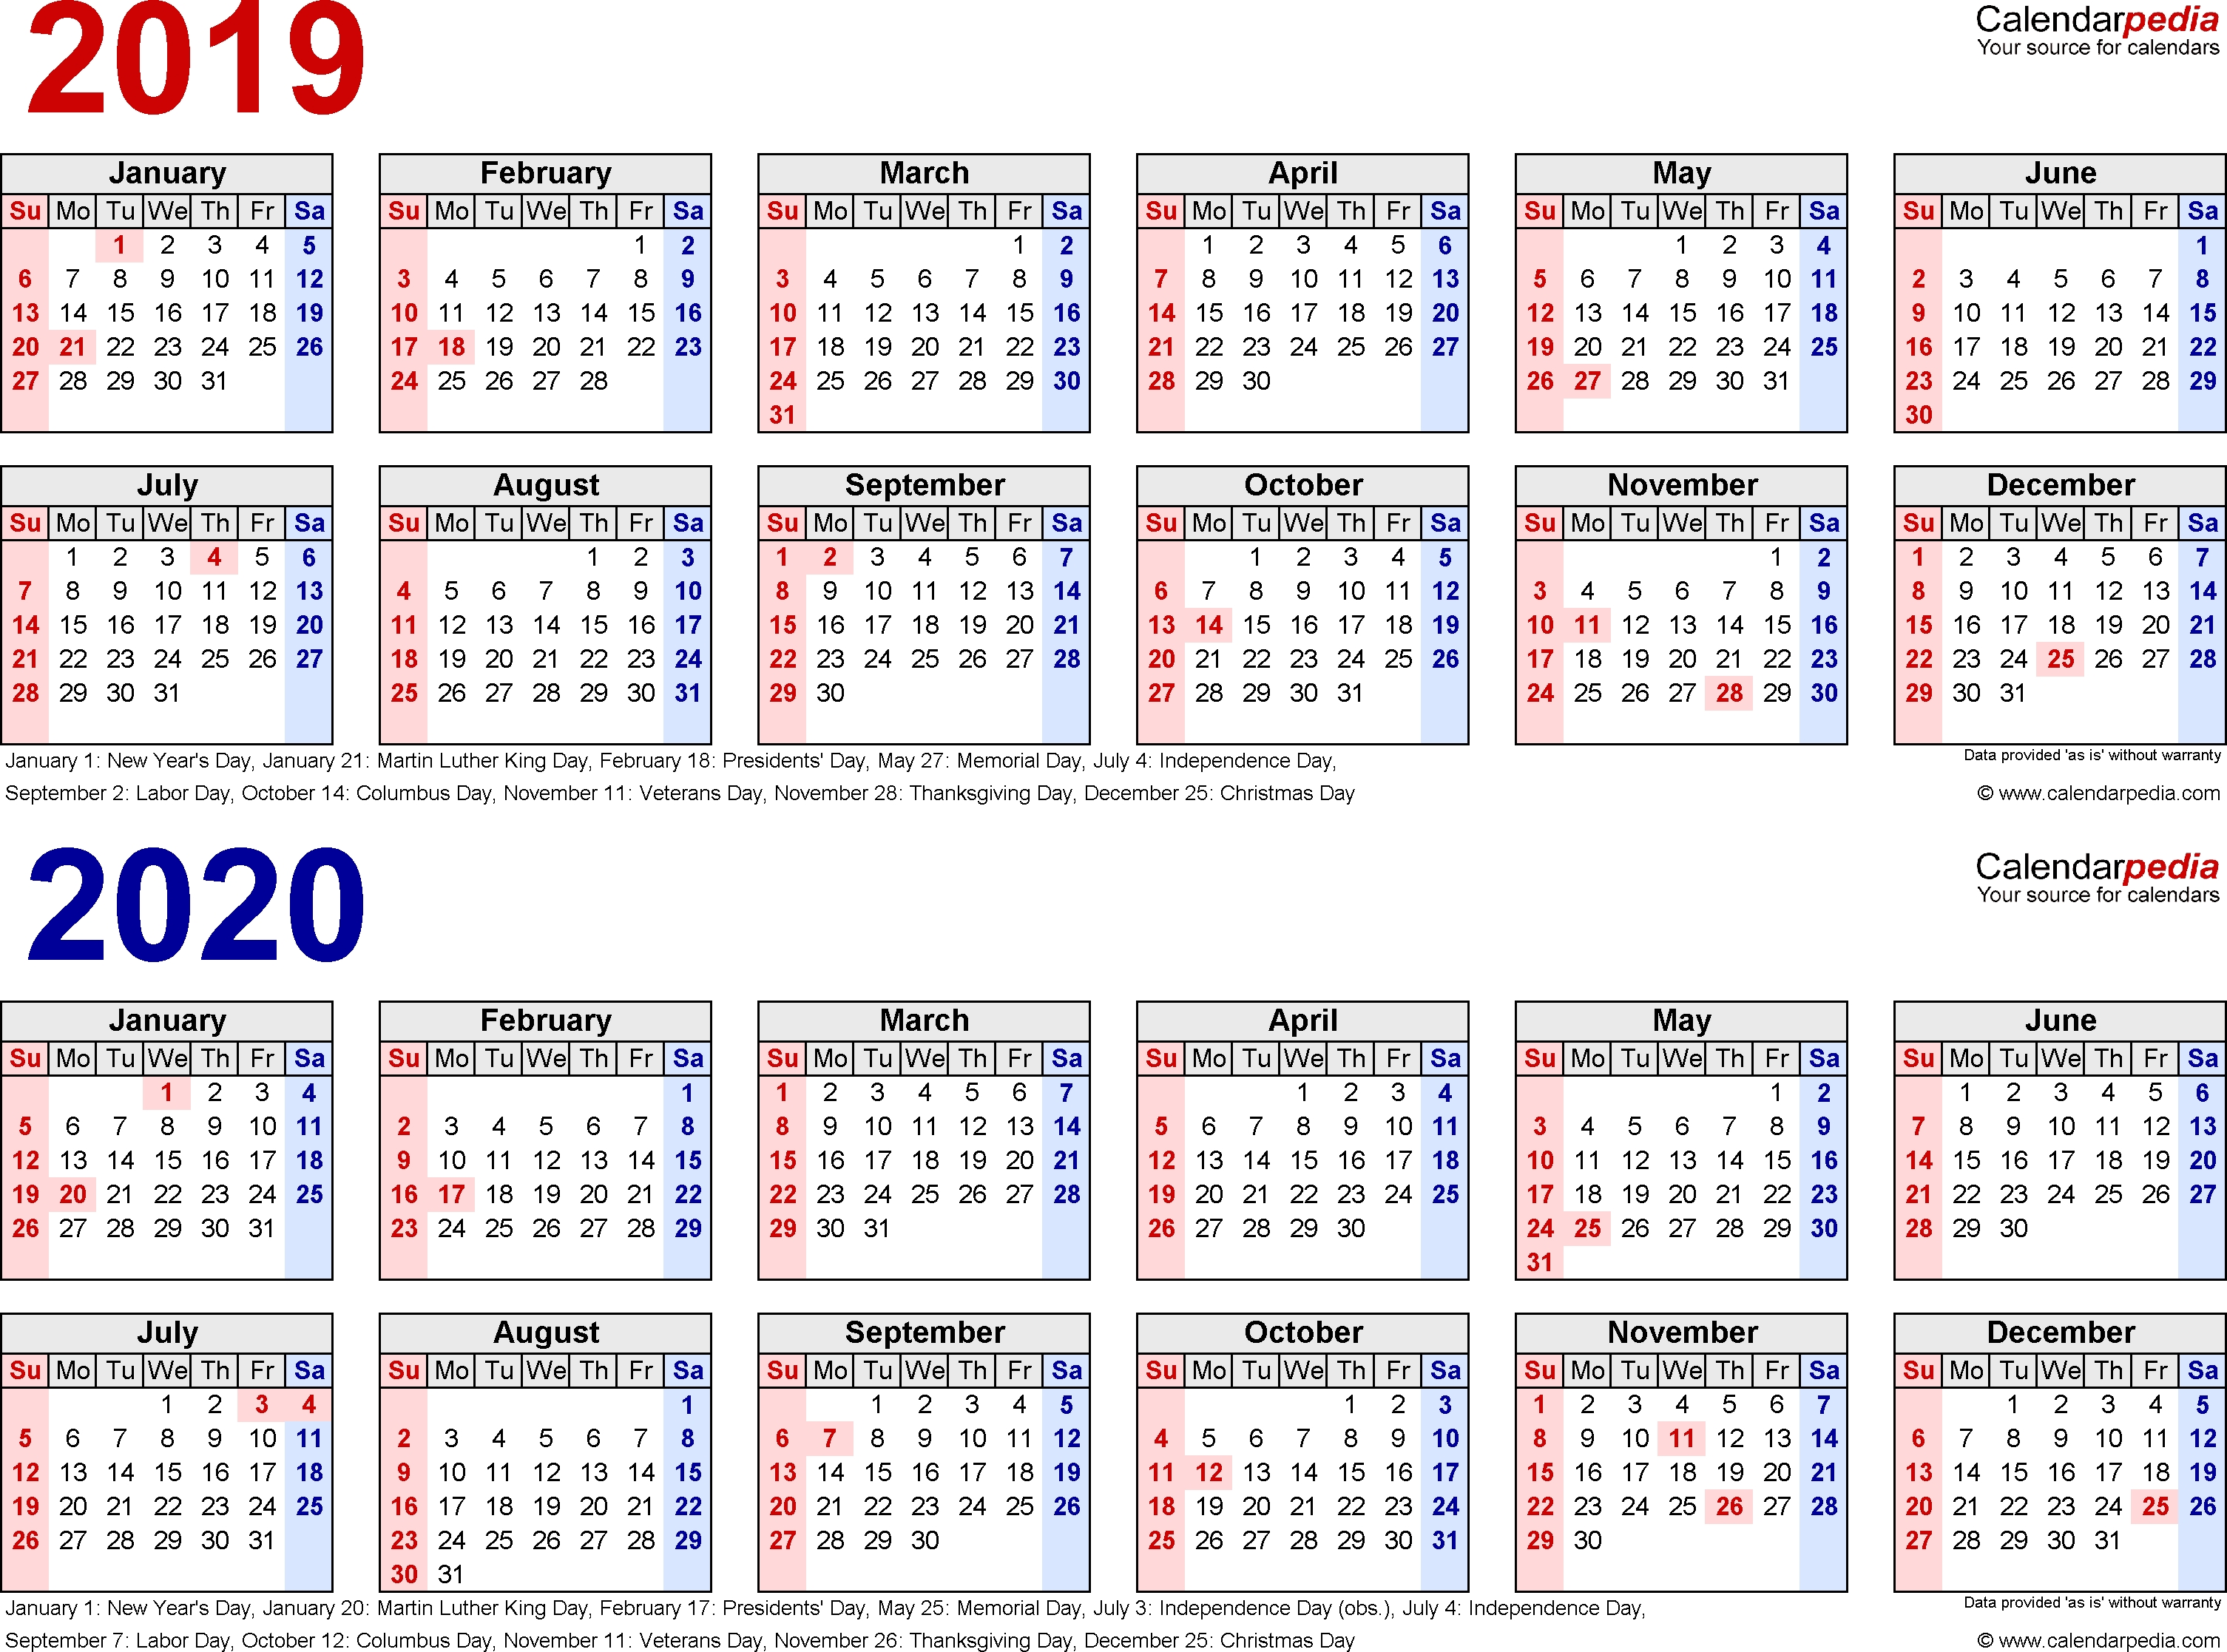 2019-2020 Calendar - Free Printable Two-Year Word Calendars throughout 2019 2020 Ms Word Calendar